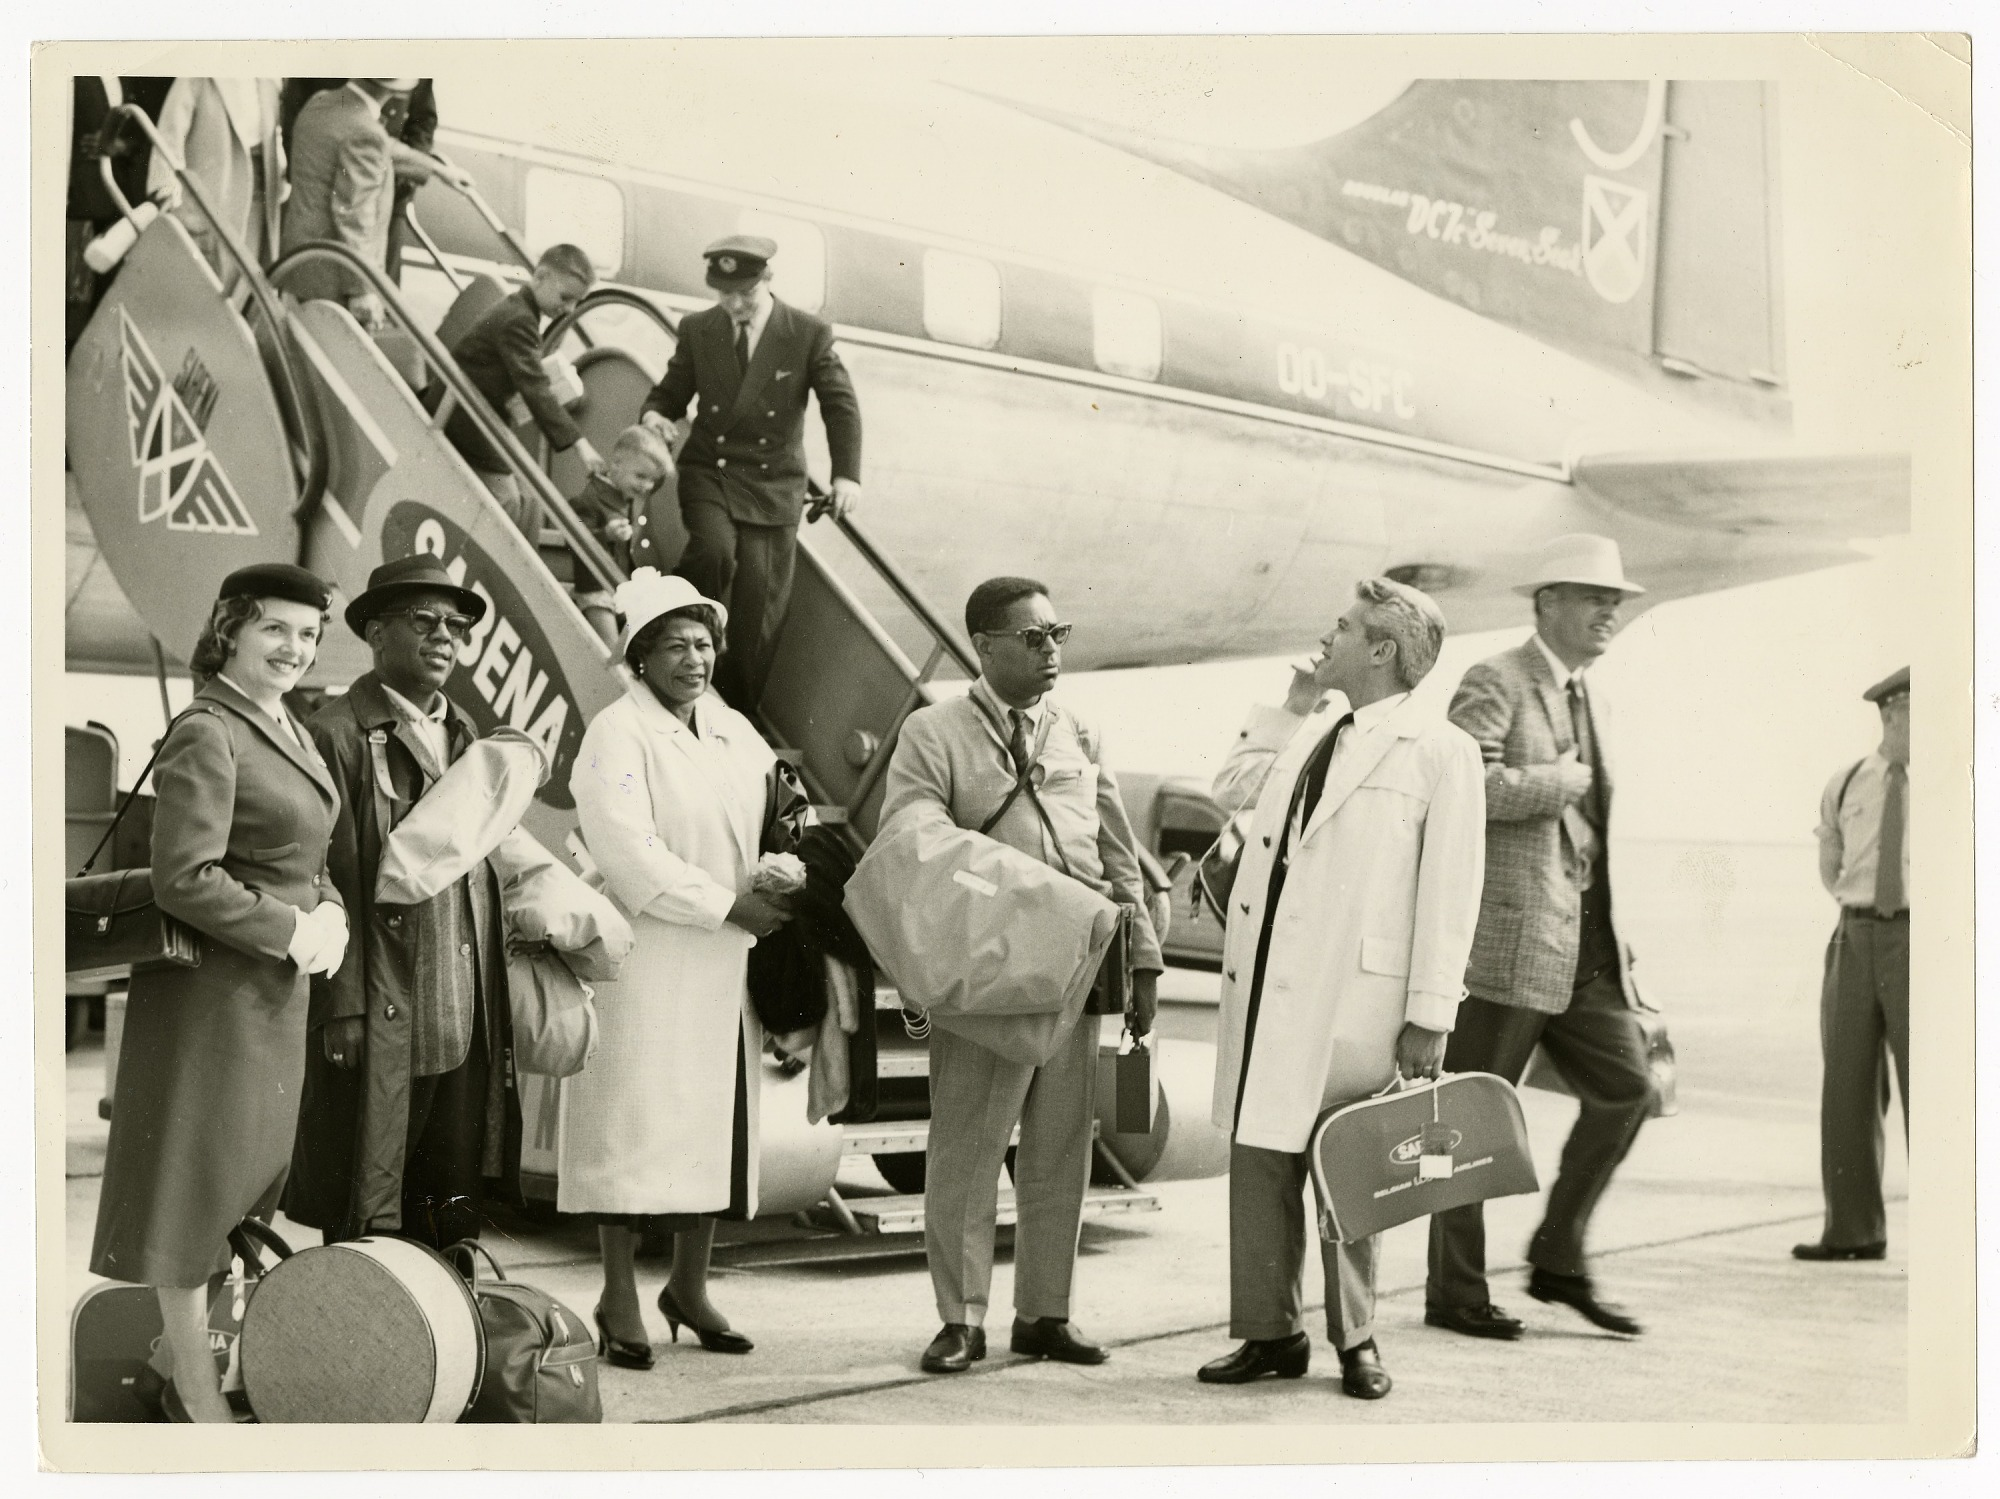 Image for Musicians and others exiting Sabena airplane. Left to right: Stewardess, Roy Eldridge, Ella Fitzgerald, Dizzy Gillespie, Lou Levy, and Paul Smith, ca. 1956. Black-and-white photoprint.